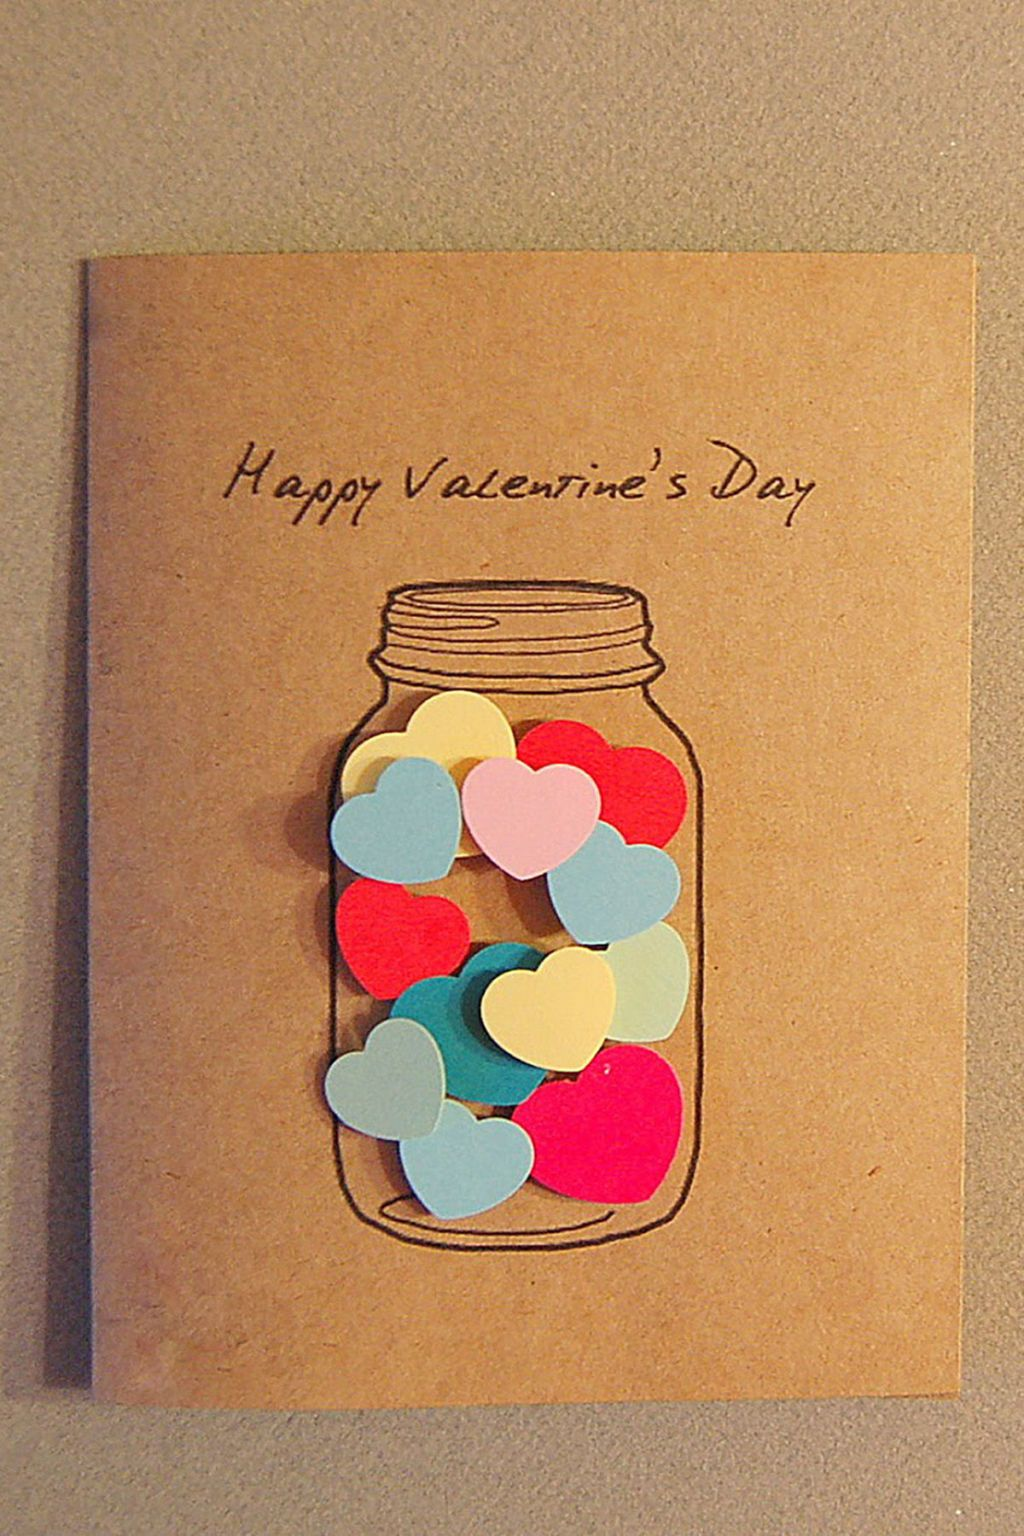 35 Easy DIY Valentine's Day Cards to Give Your Loved Ones